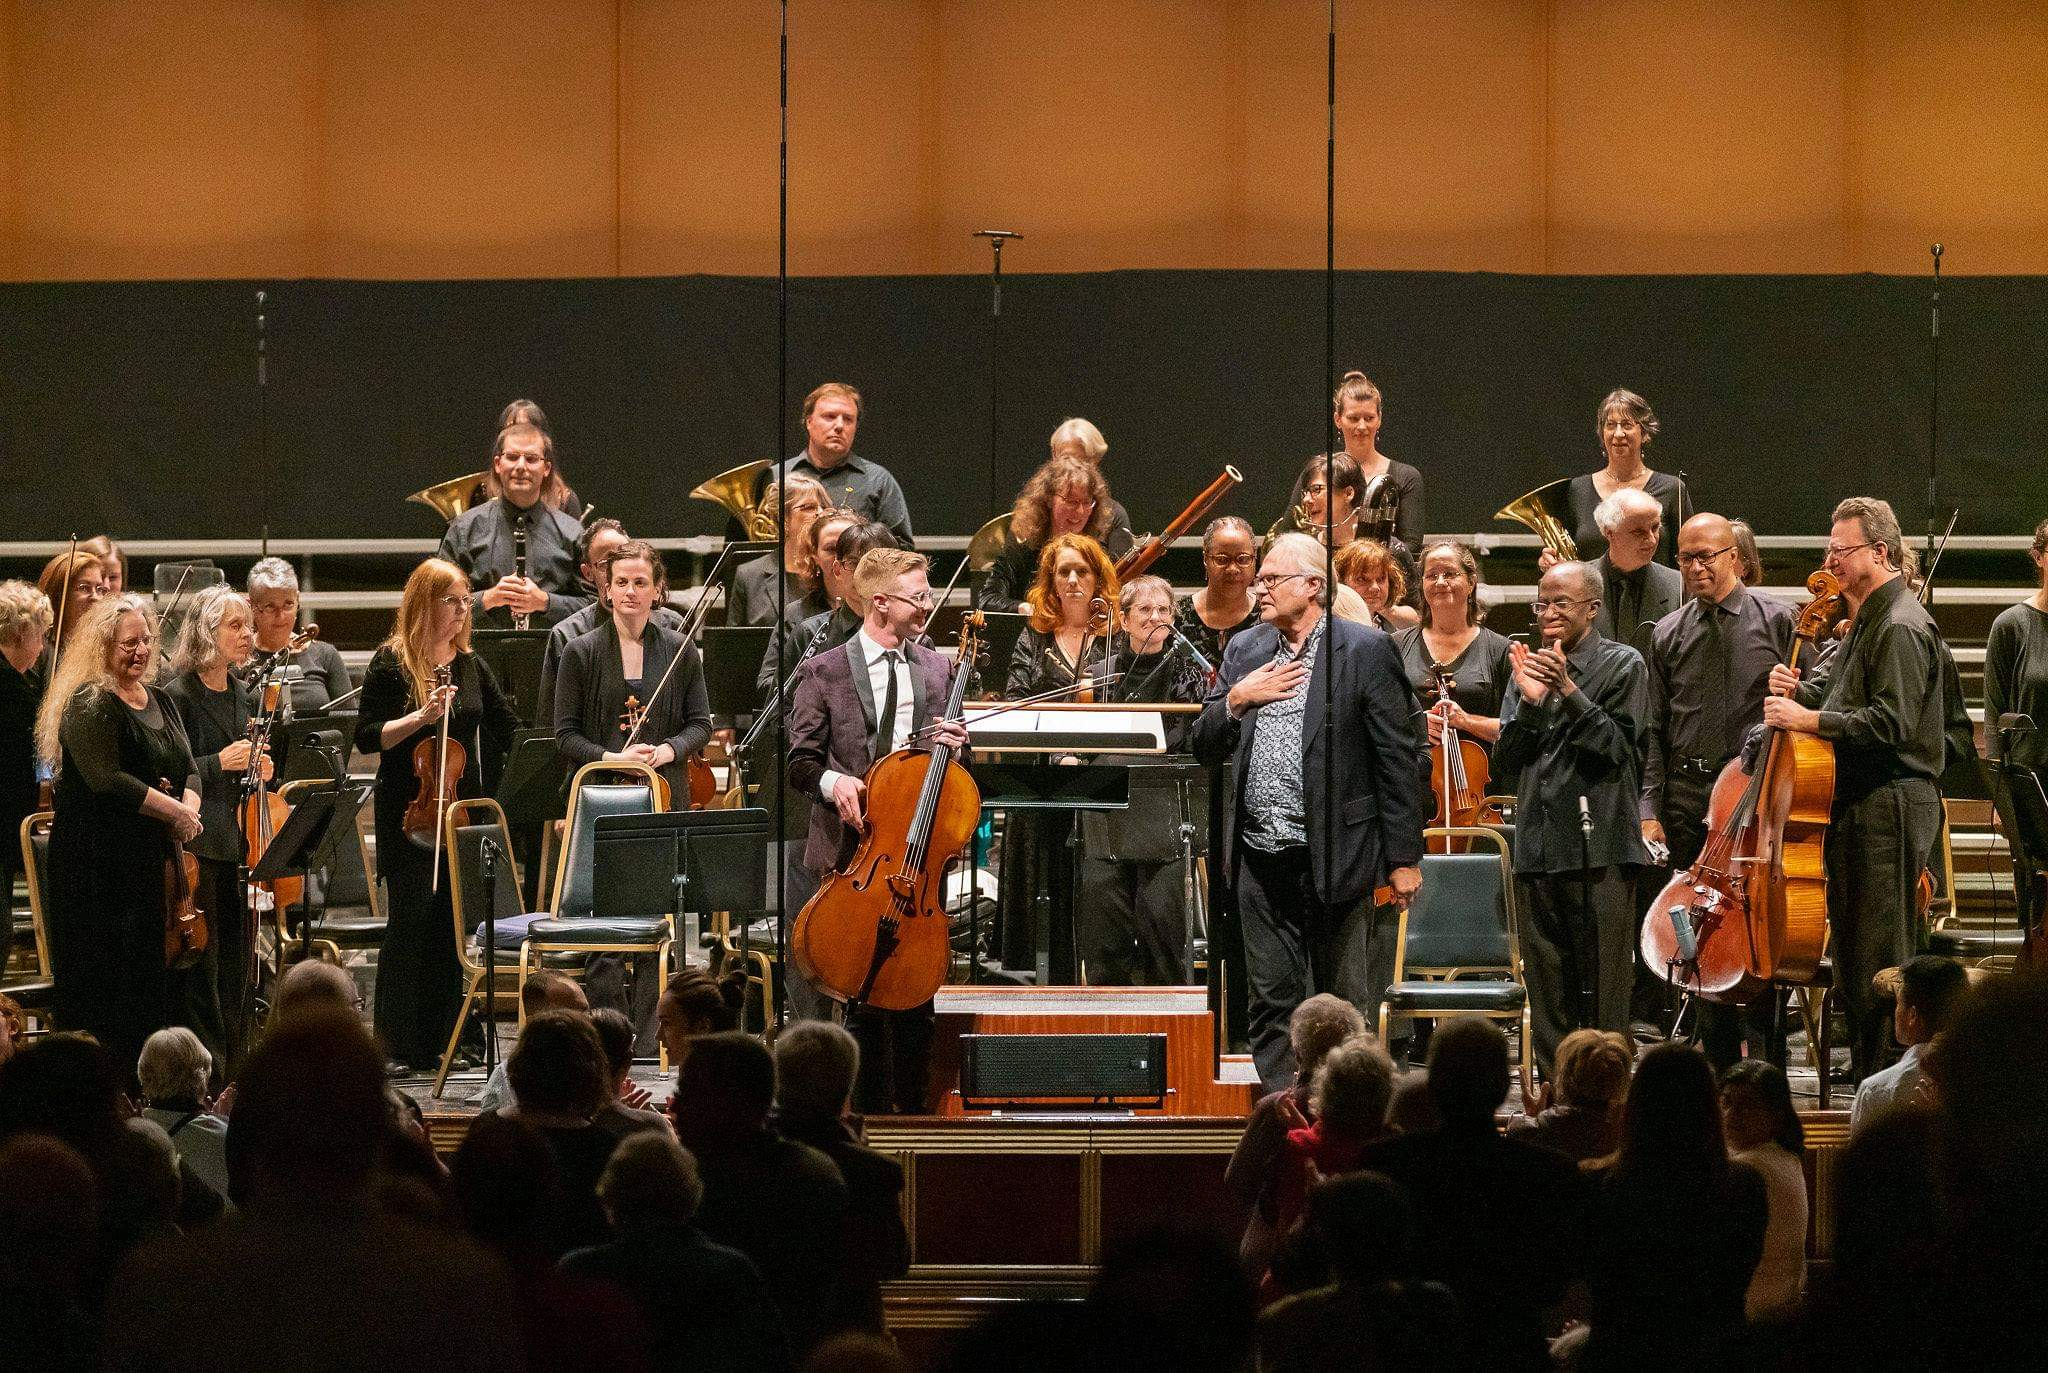 Ghost Ship Concerto for Cello and Orchestra performed by the Oakland Symphony